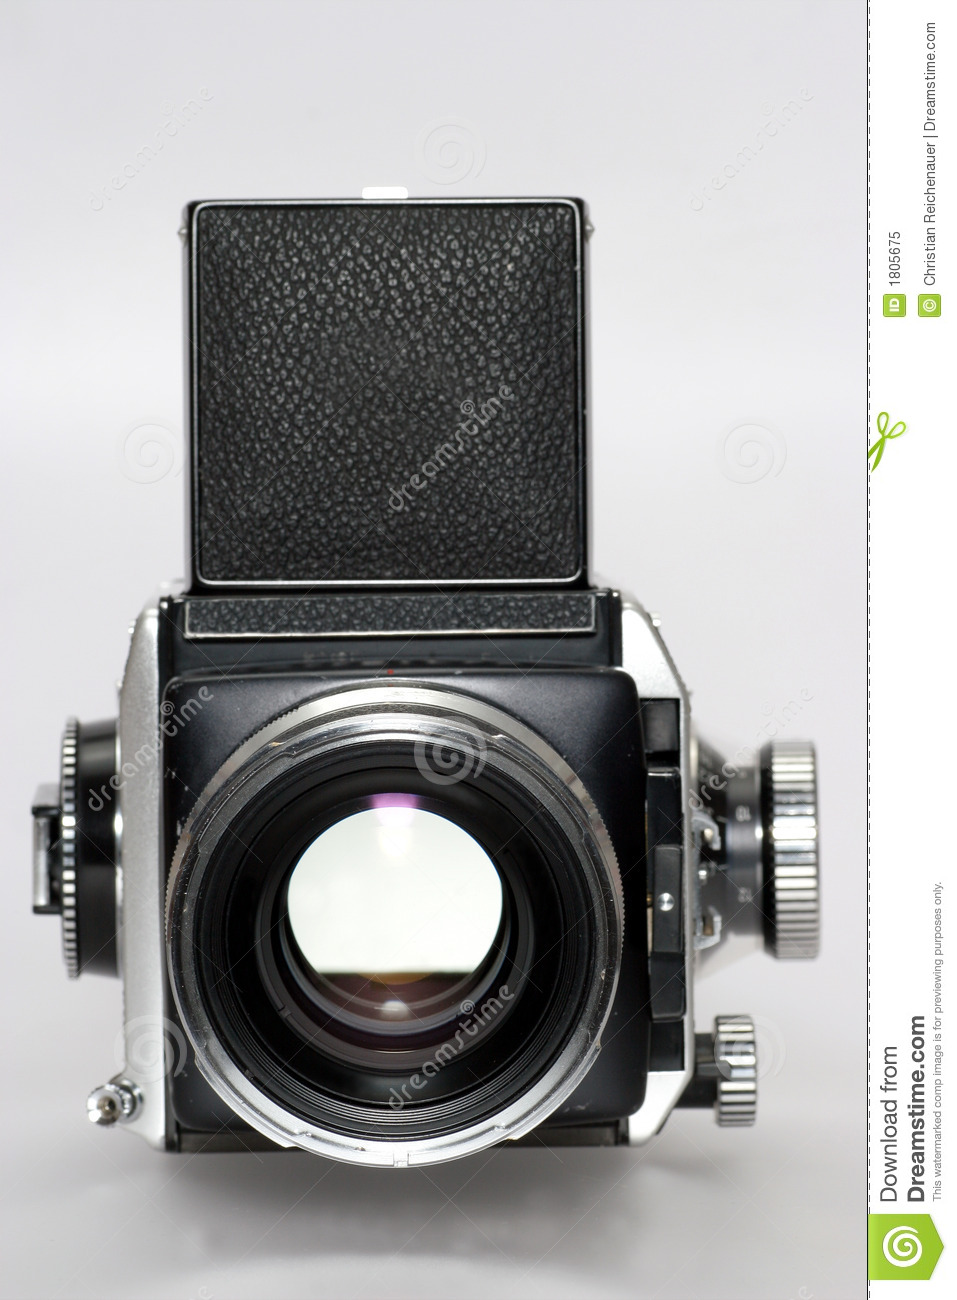 Medium Format Camera With Lens Frontview Stock Image - Image of